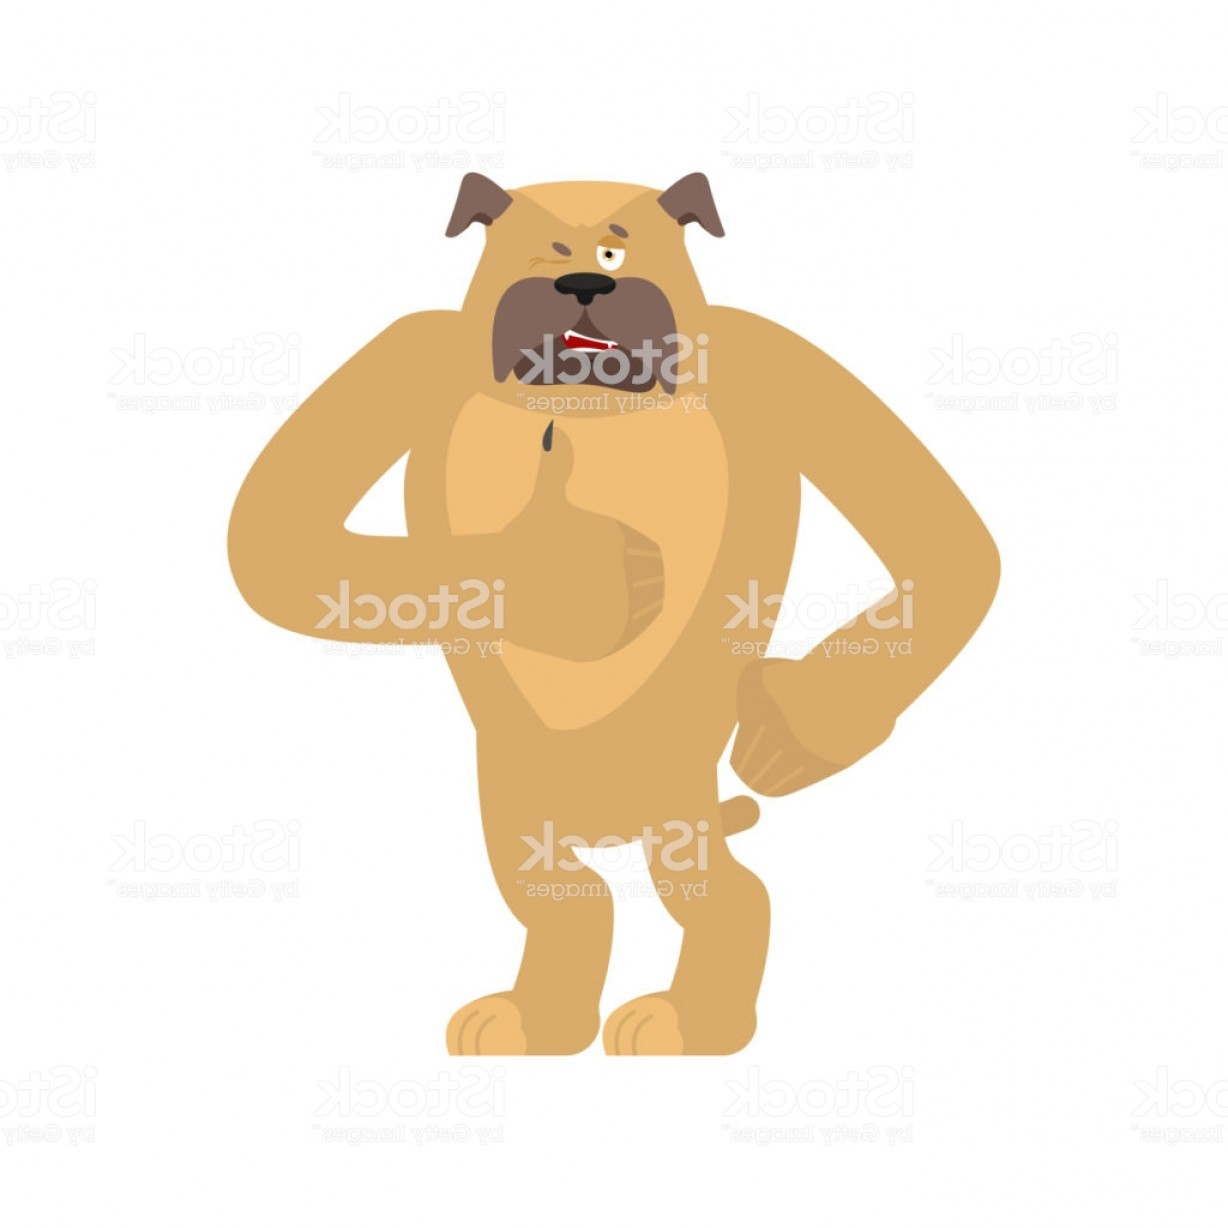 Bpxer Vector Art Happy Dog: Dog Thumbs Up And Winks Pet Happy Emoji Bulldog Vector Illustration Gm